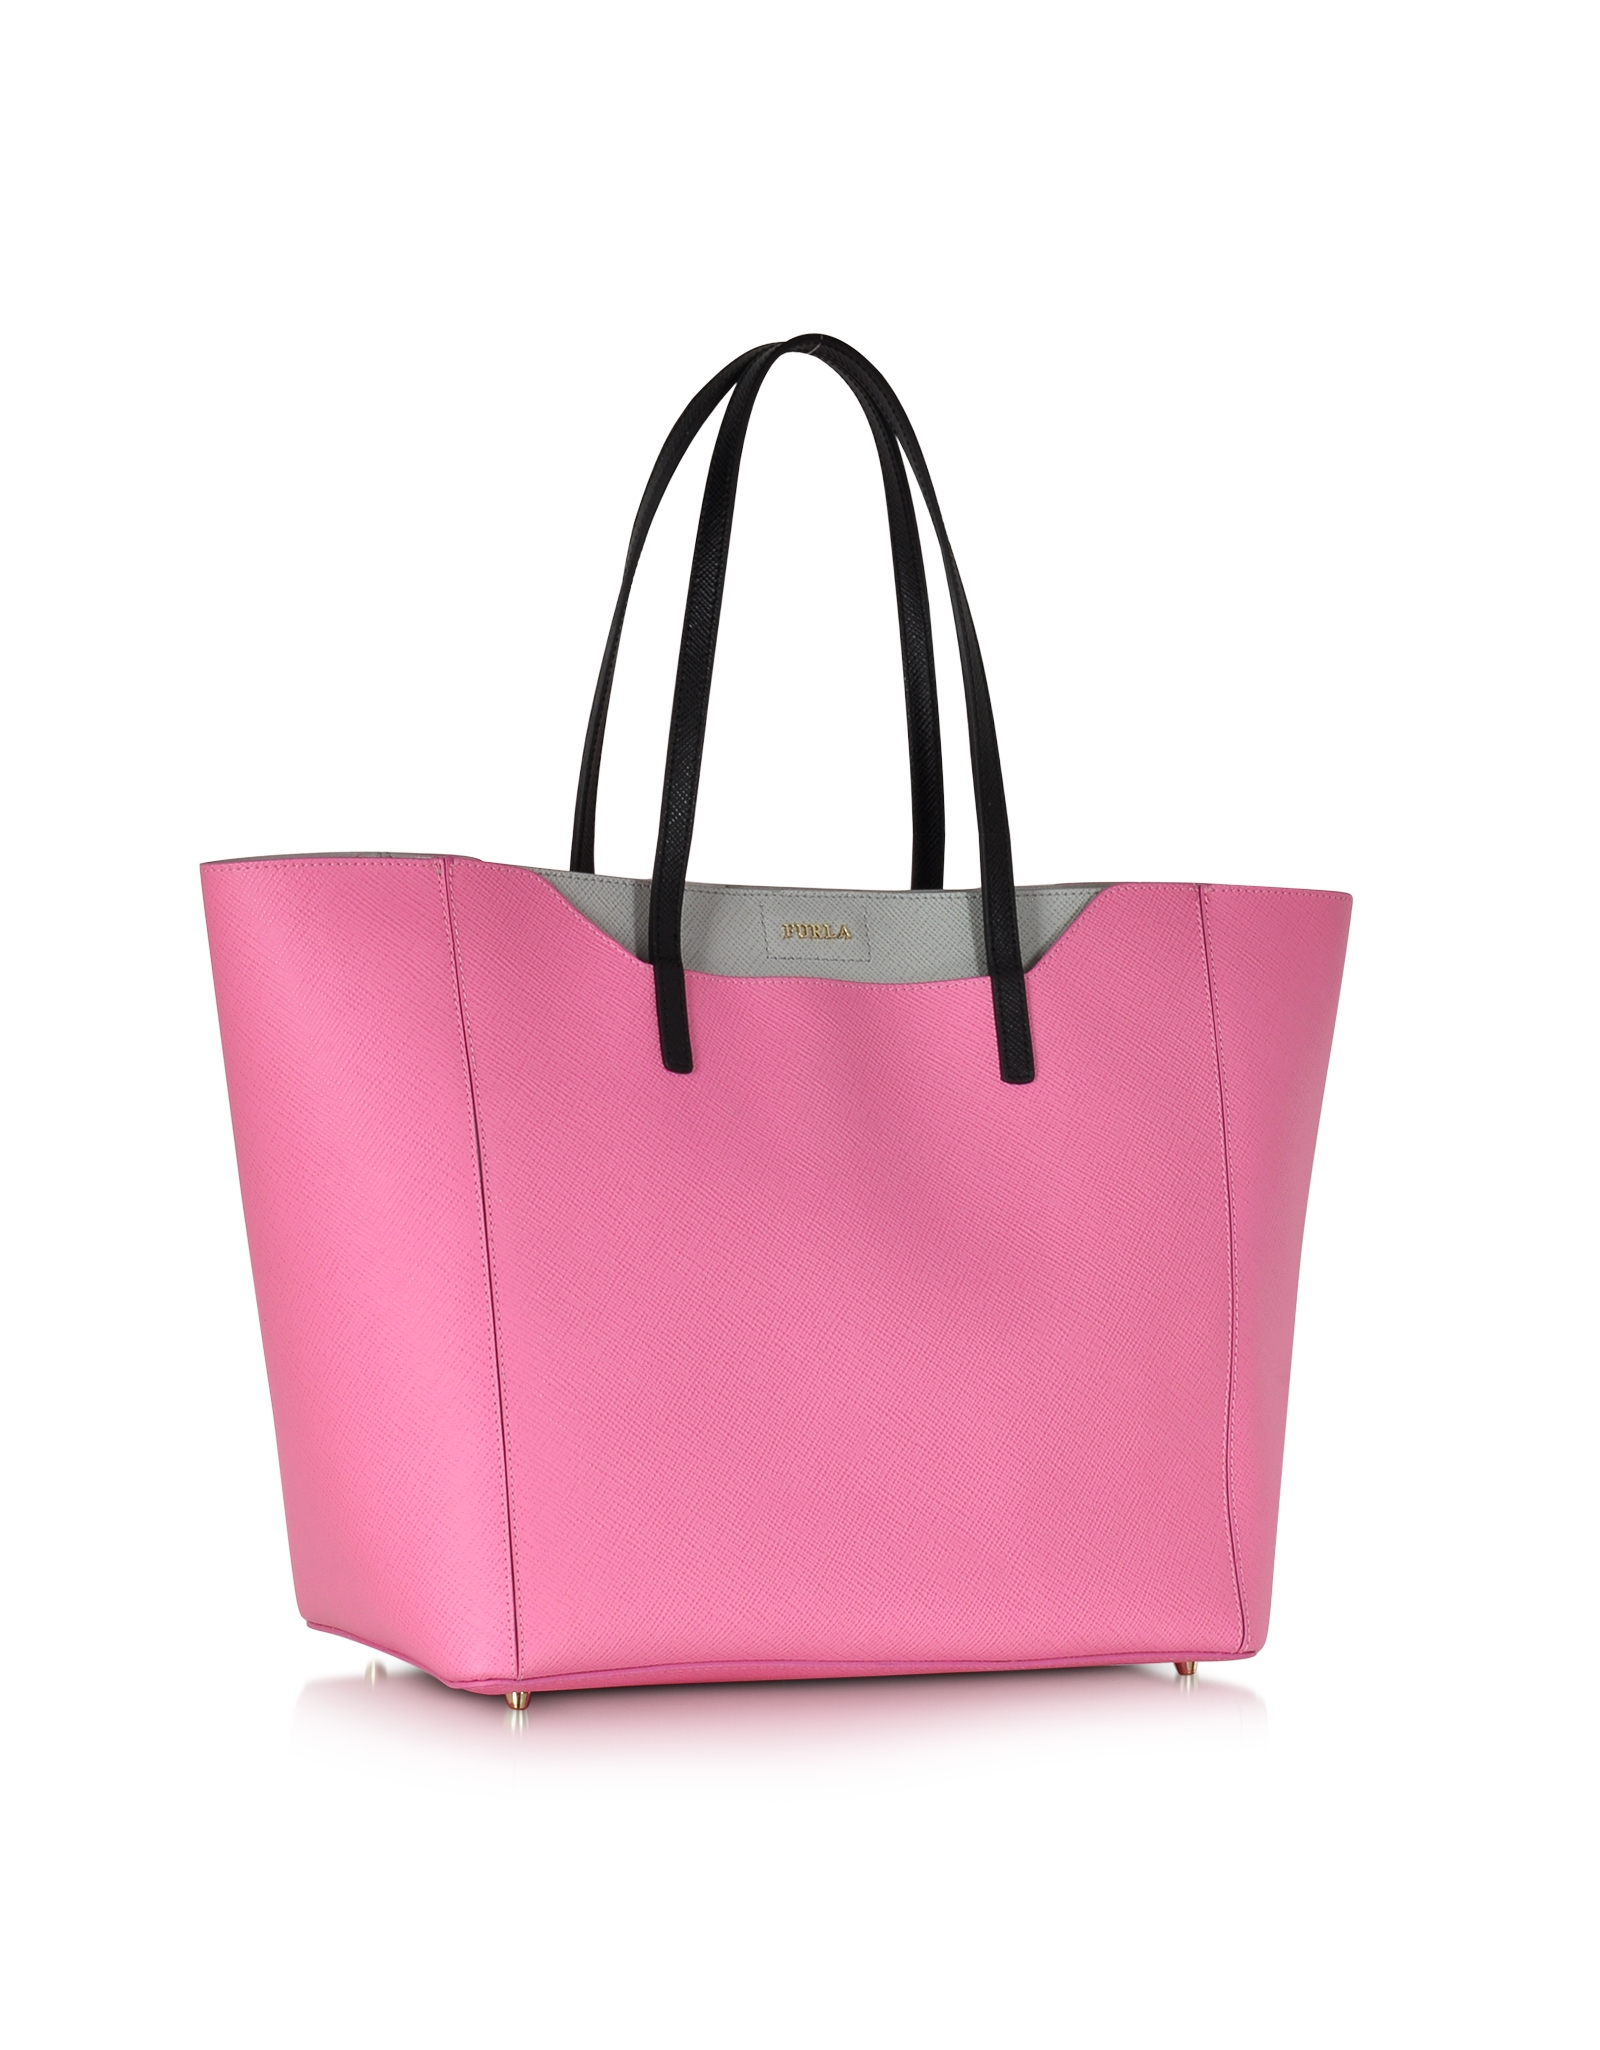 furla-pink-fantasia-pink-gray-leather-tote-bag-product-2-395098243-normal